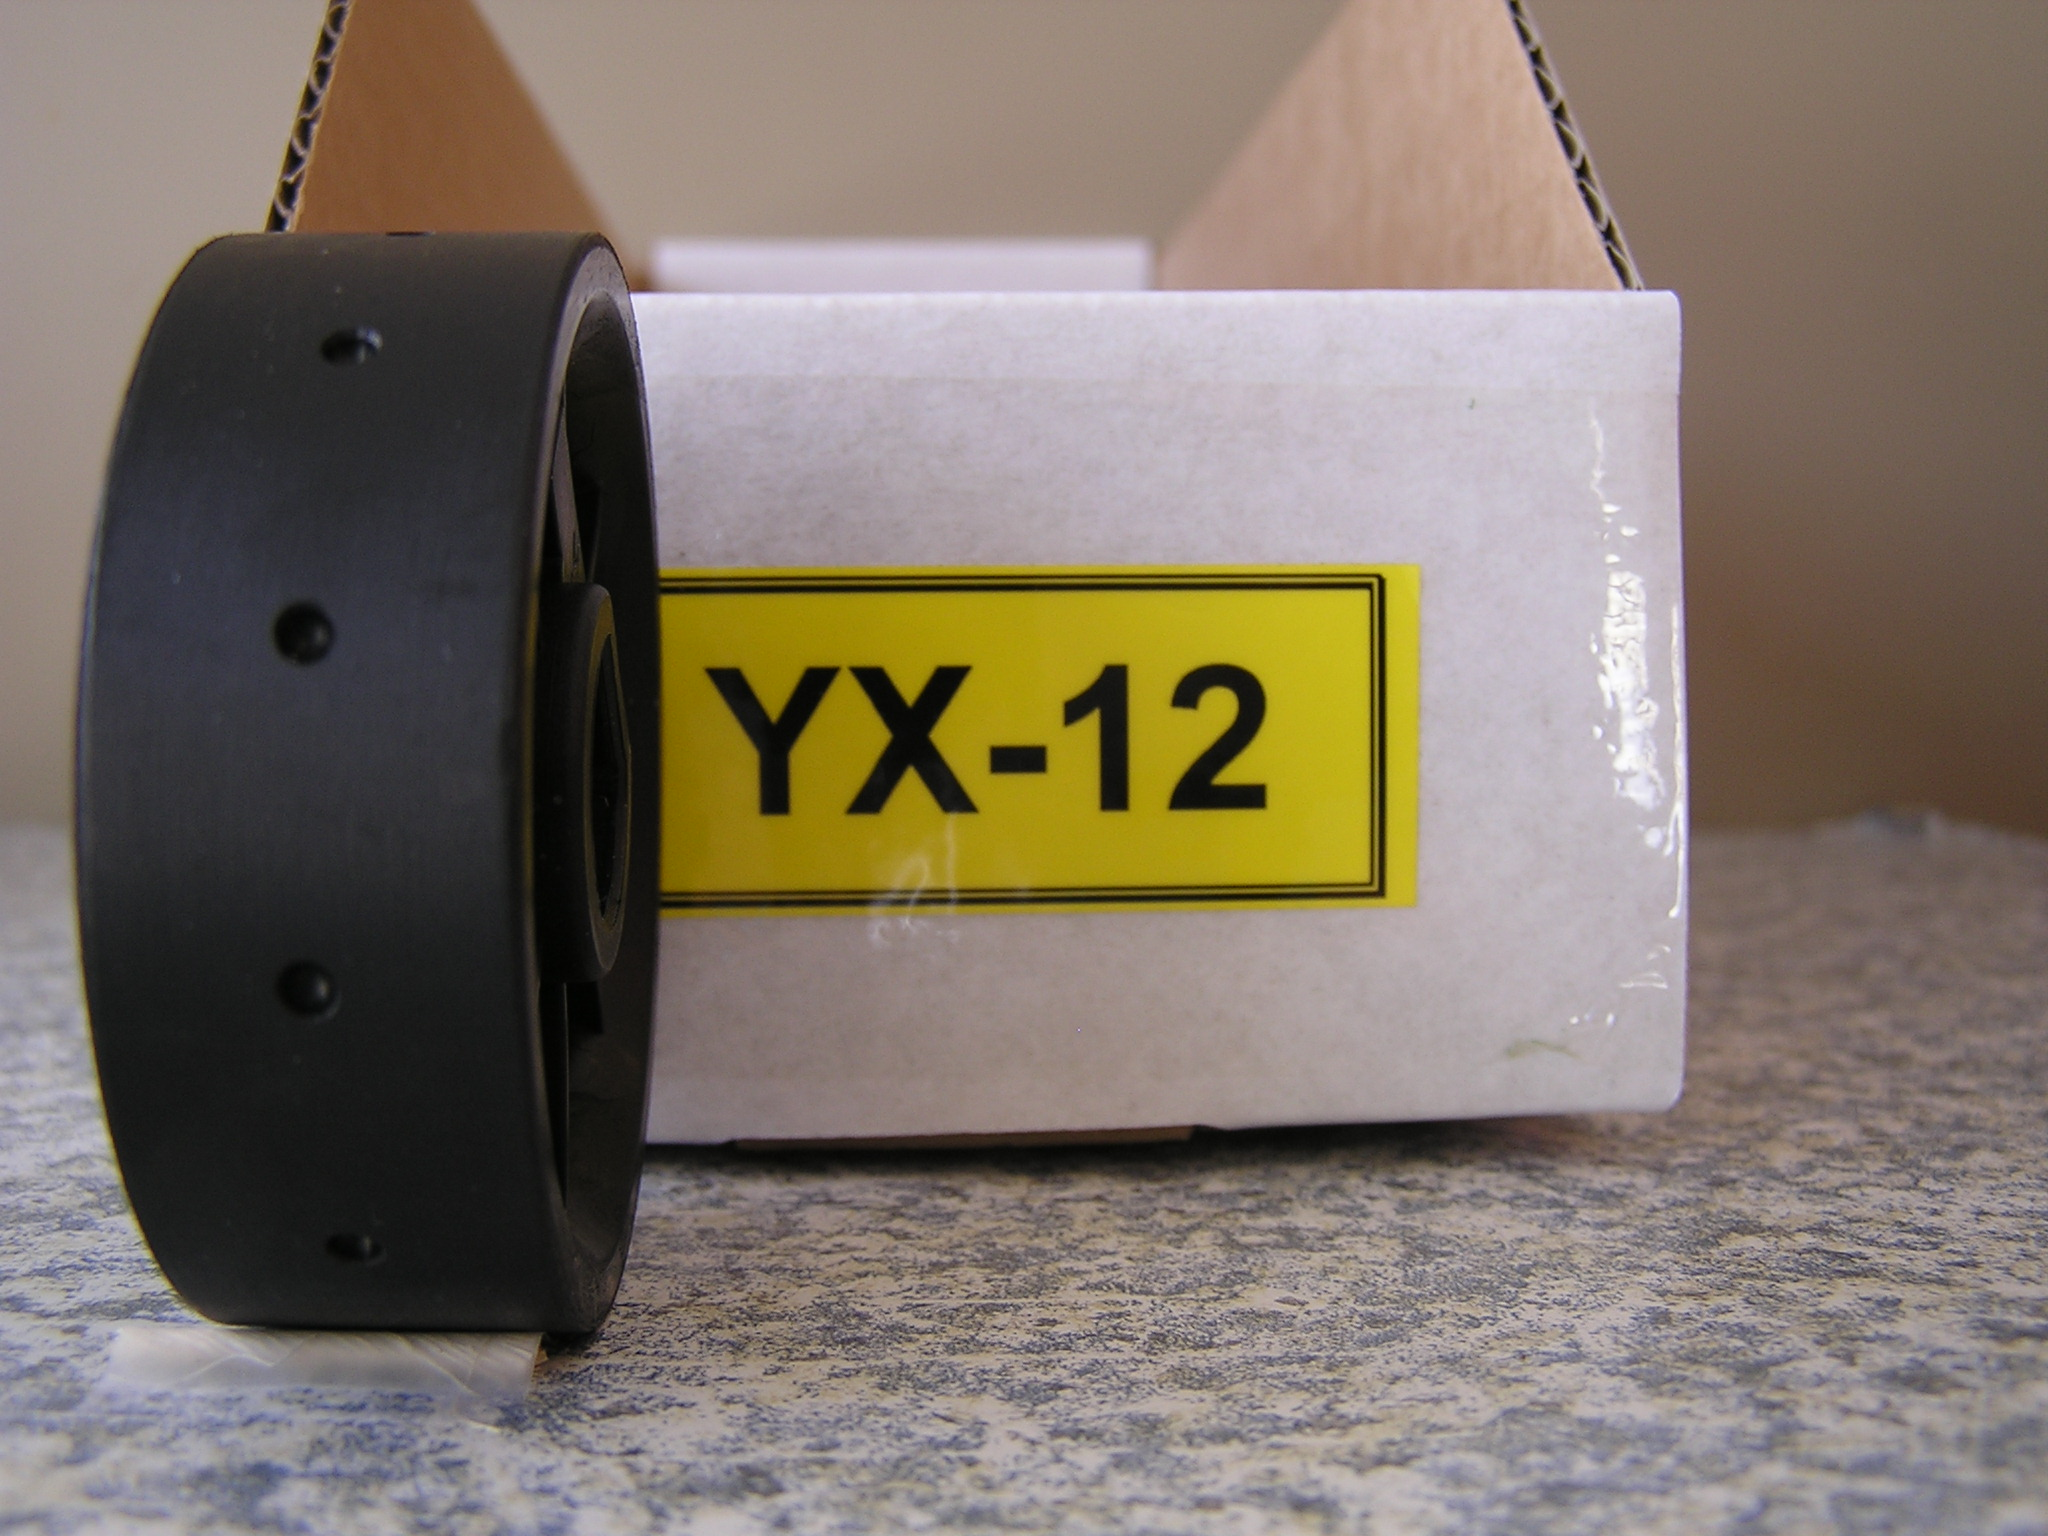 YX-12 Roller for Jang Seeder, 2.5 mm Slot, 12 Slots on the Roller